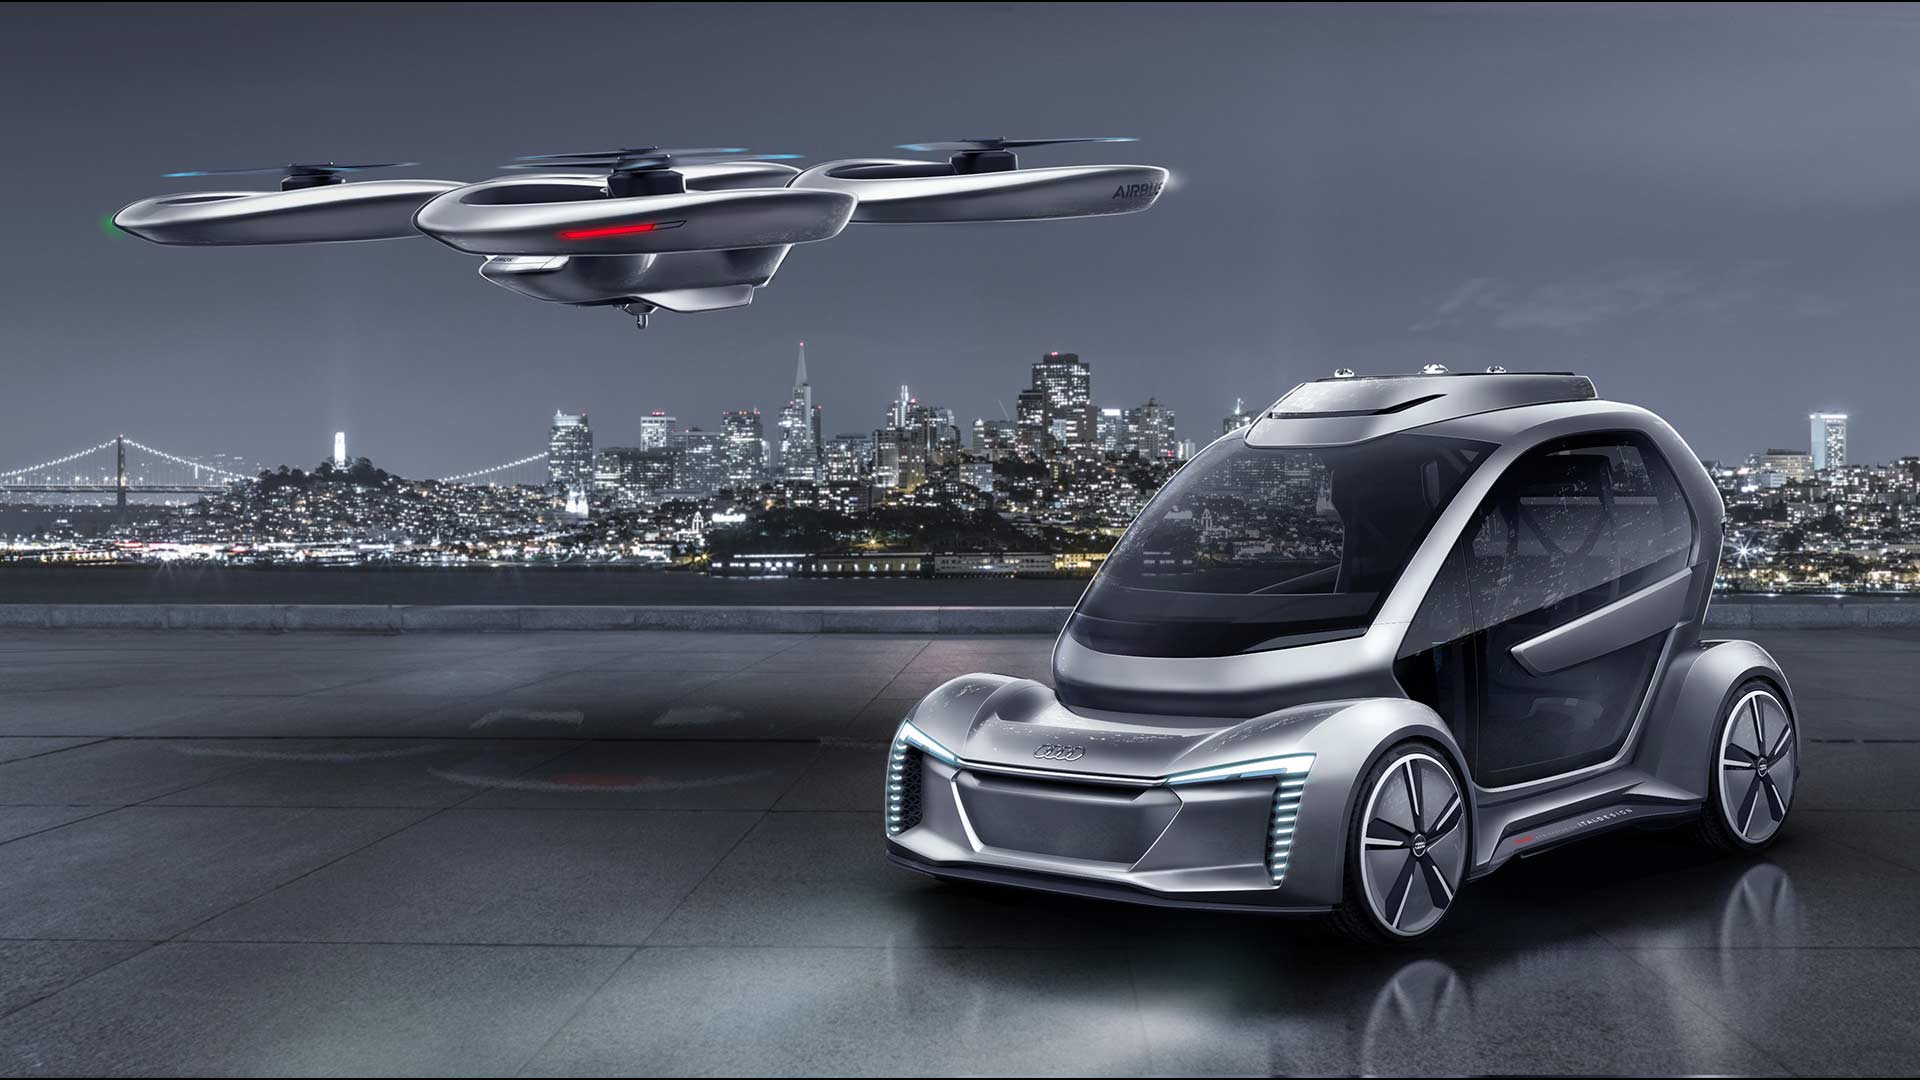 Audi-air-taxi-project-Ingolstadt